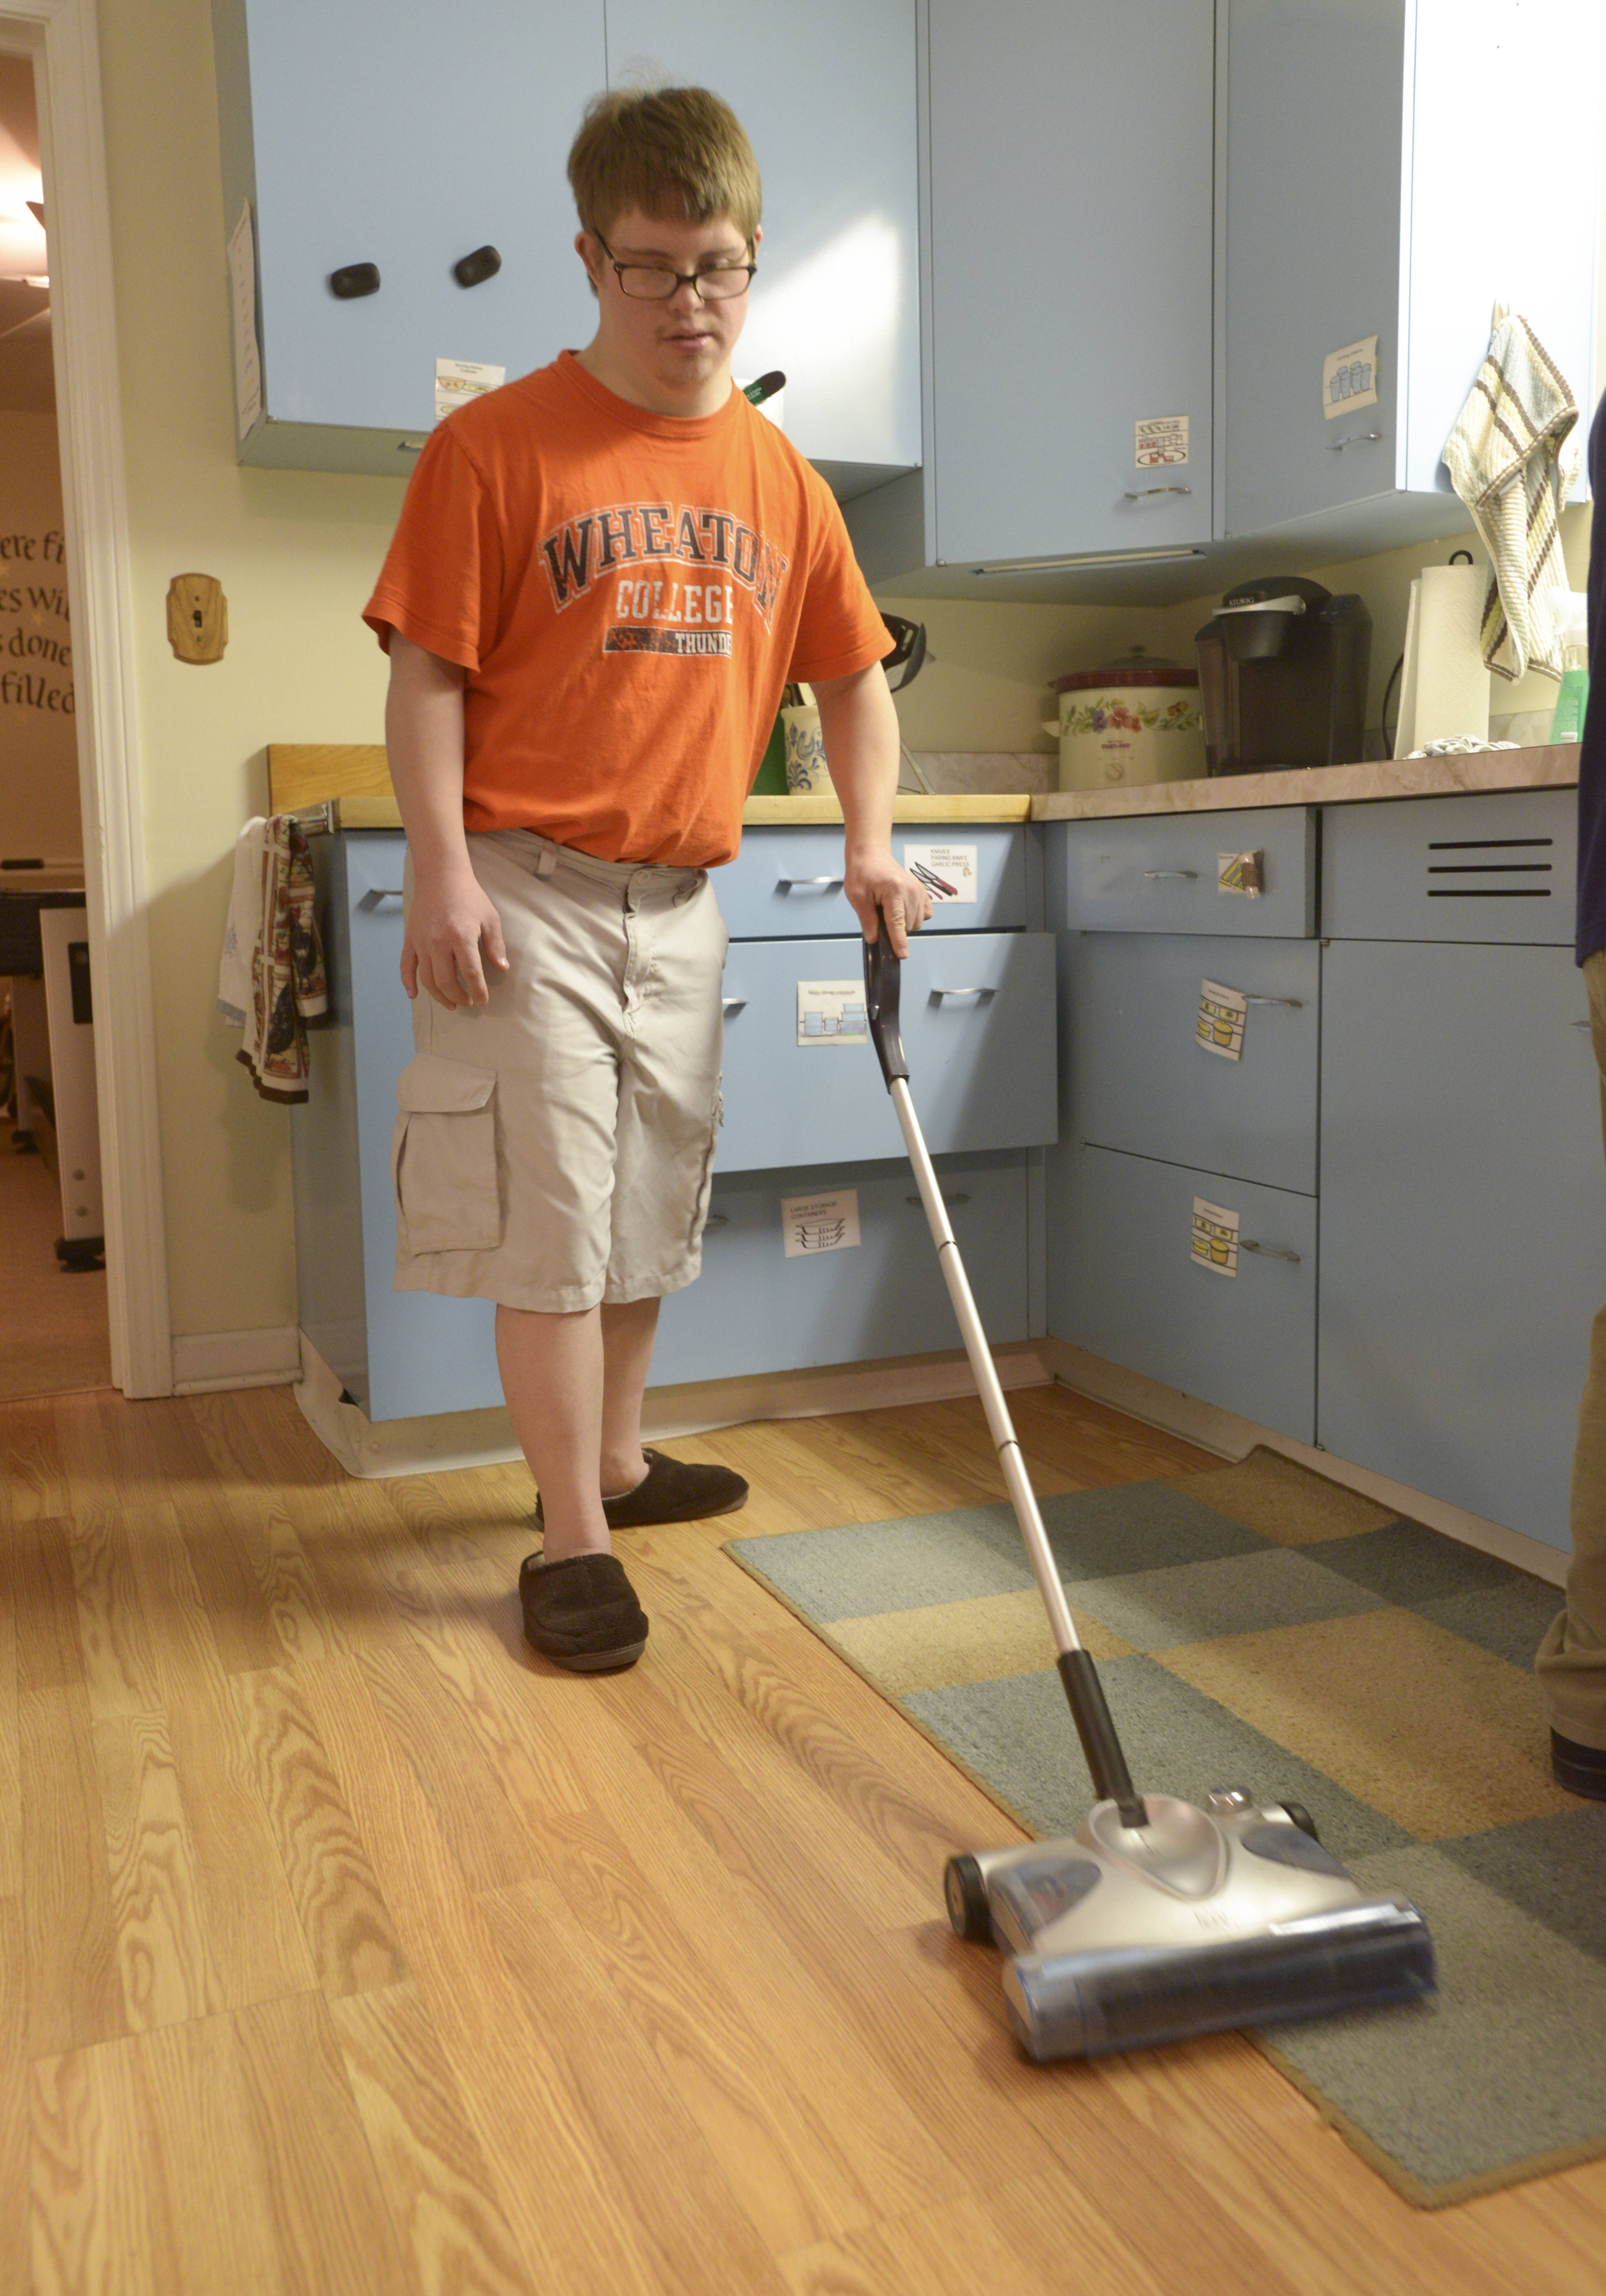 Washington House resident David Brinker cleans the floor after dinner. All the residents have weekly and monthly chores.